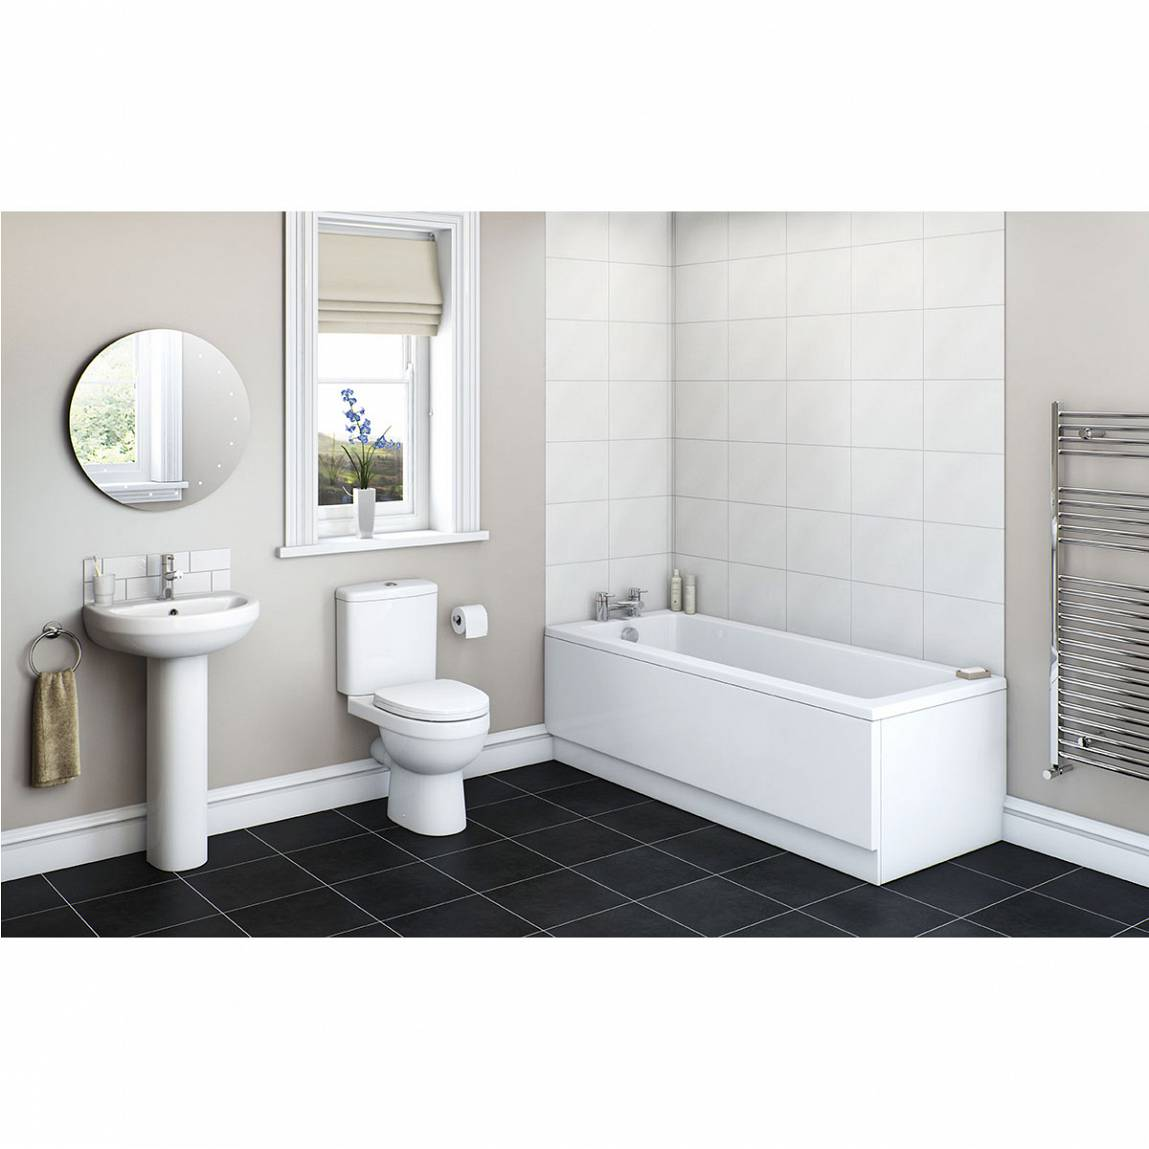 Image of Energy Bathroom Set with Kensington 1700 x 700 Bath Suite